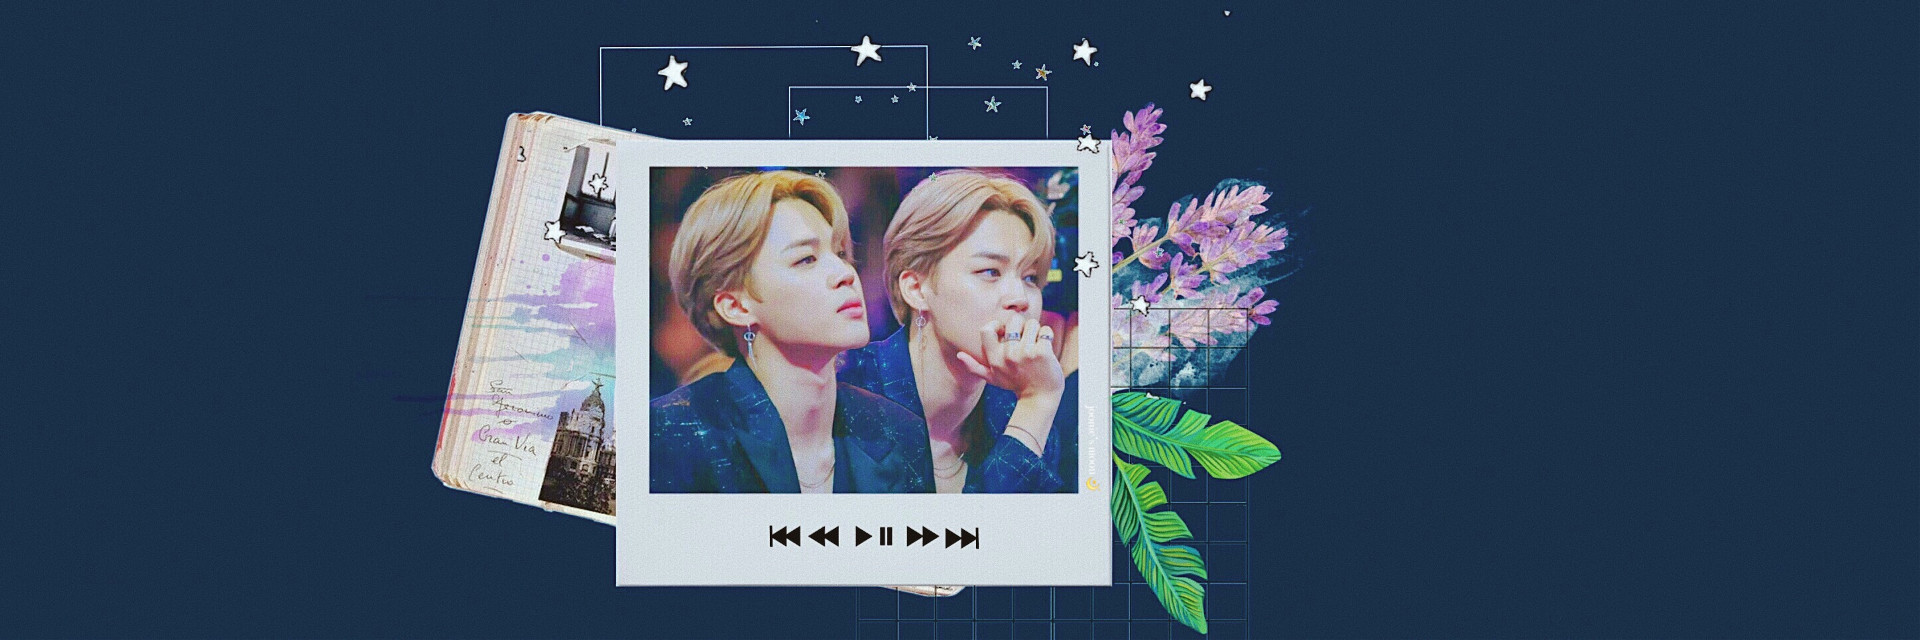 I can't get over this look. He looked like a prince 😍🤤 #Jimin #handsome #BTS #header #twitter #collage #mixmatch #polaroid